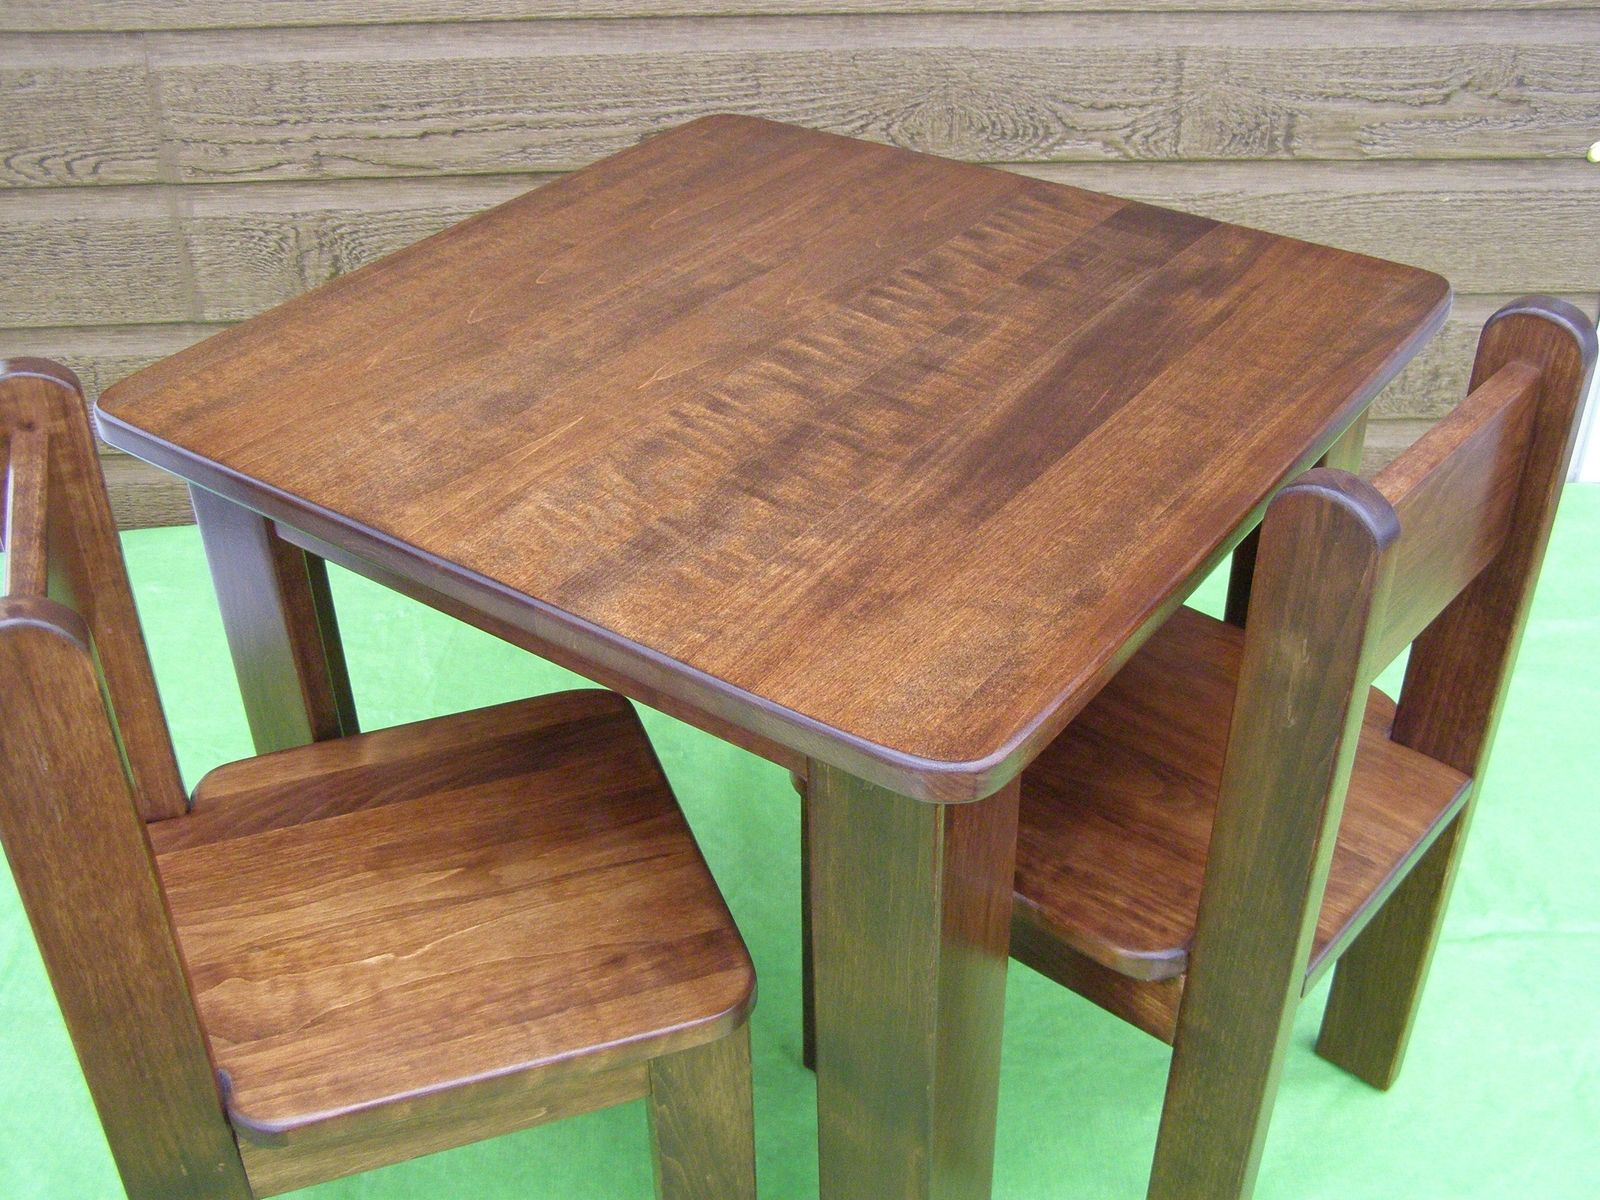 Hand Crafted Table And Chairs For Children by Atelier Unik-Art ...